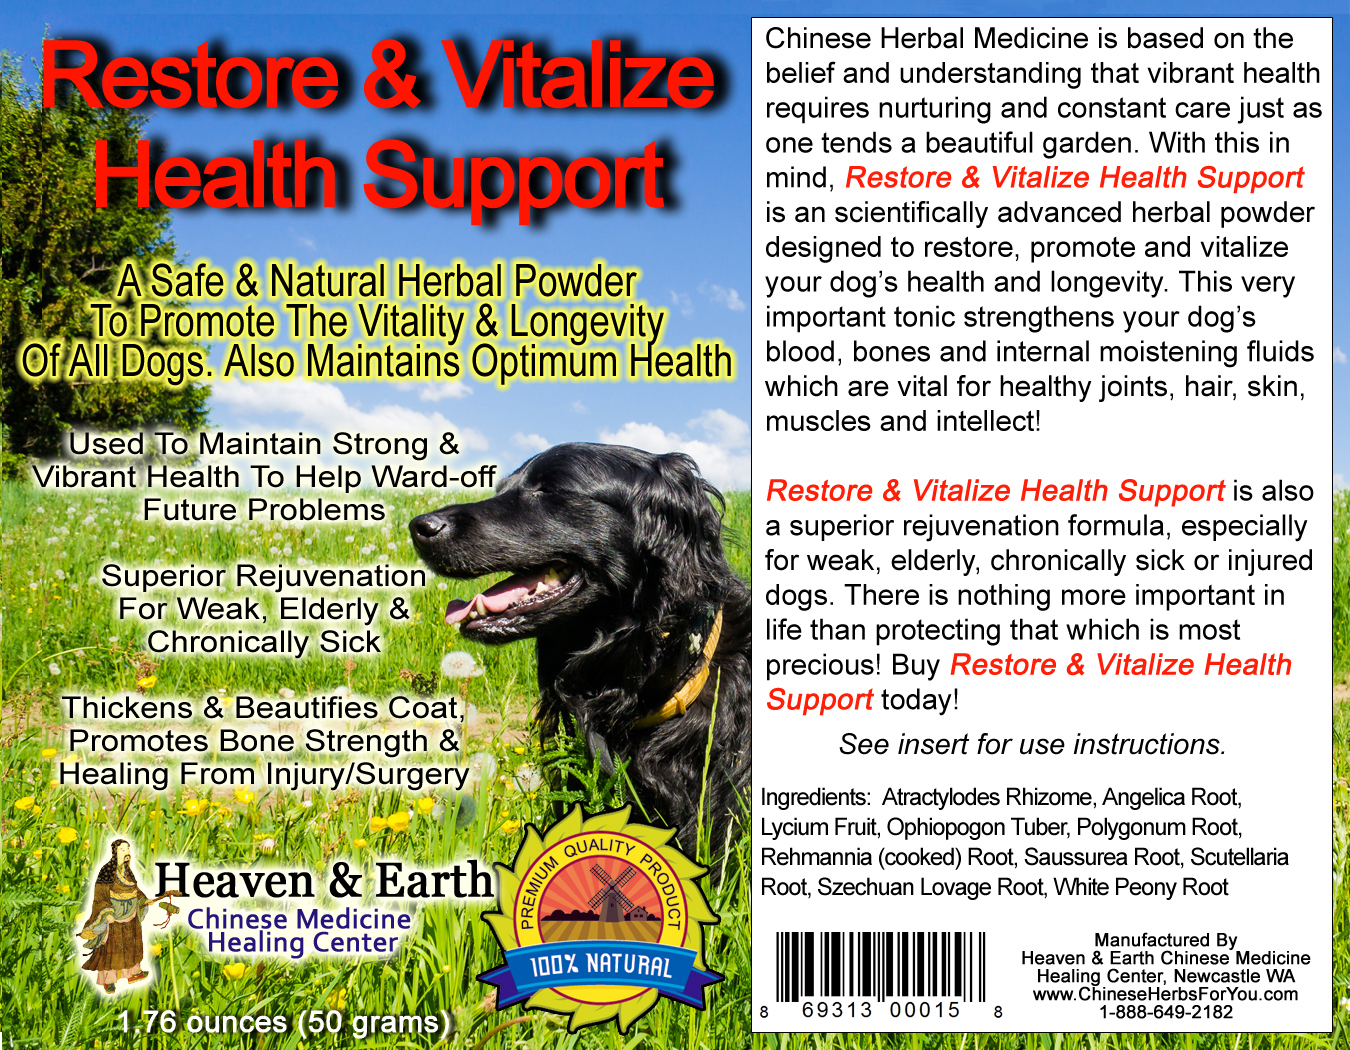 Restore and Vitalize Health Support Powder for Pets Full Label